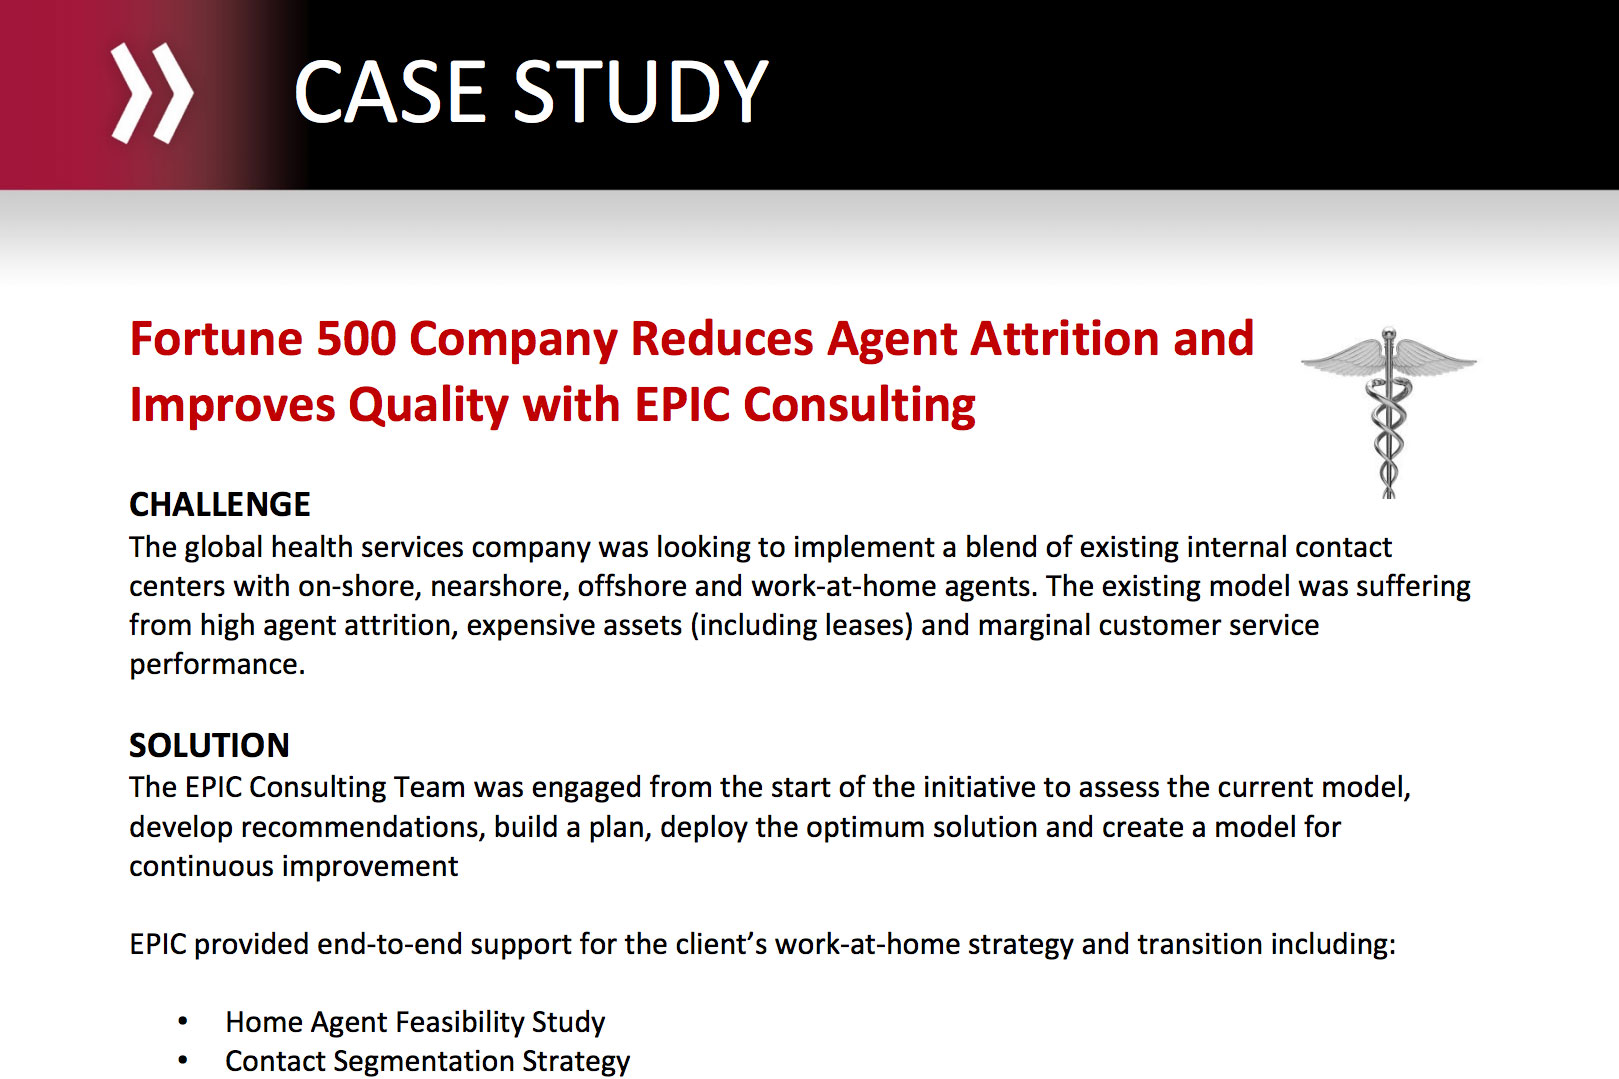 Fortune 500 Company Reduces Agent Attrition and Improves Quality with EPIC Consulting